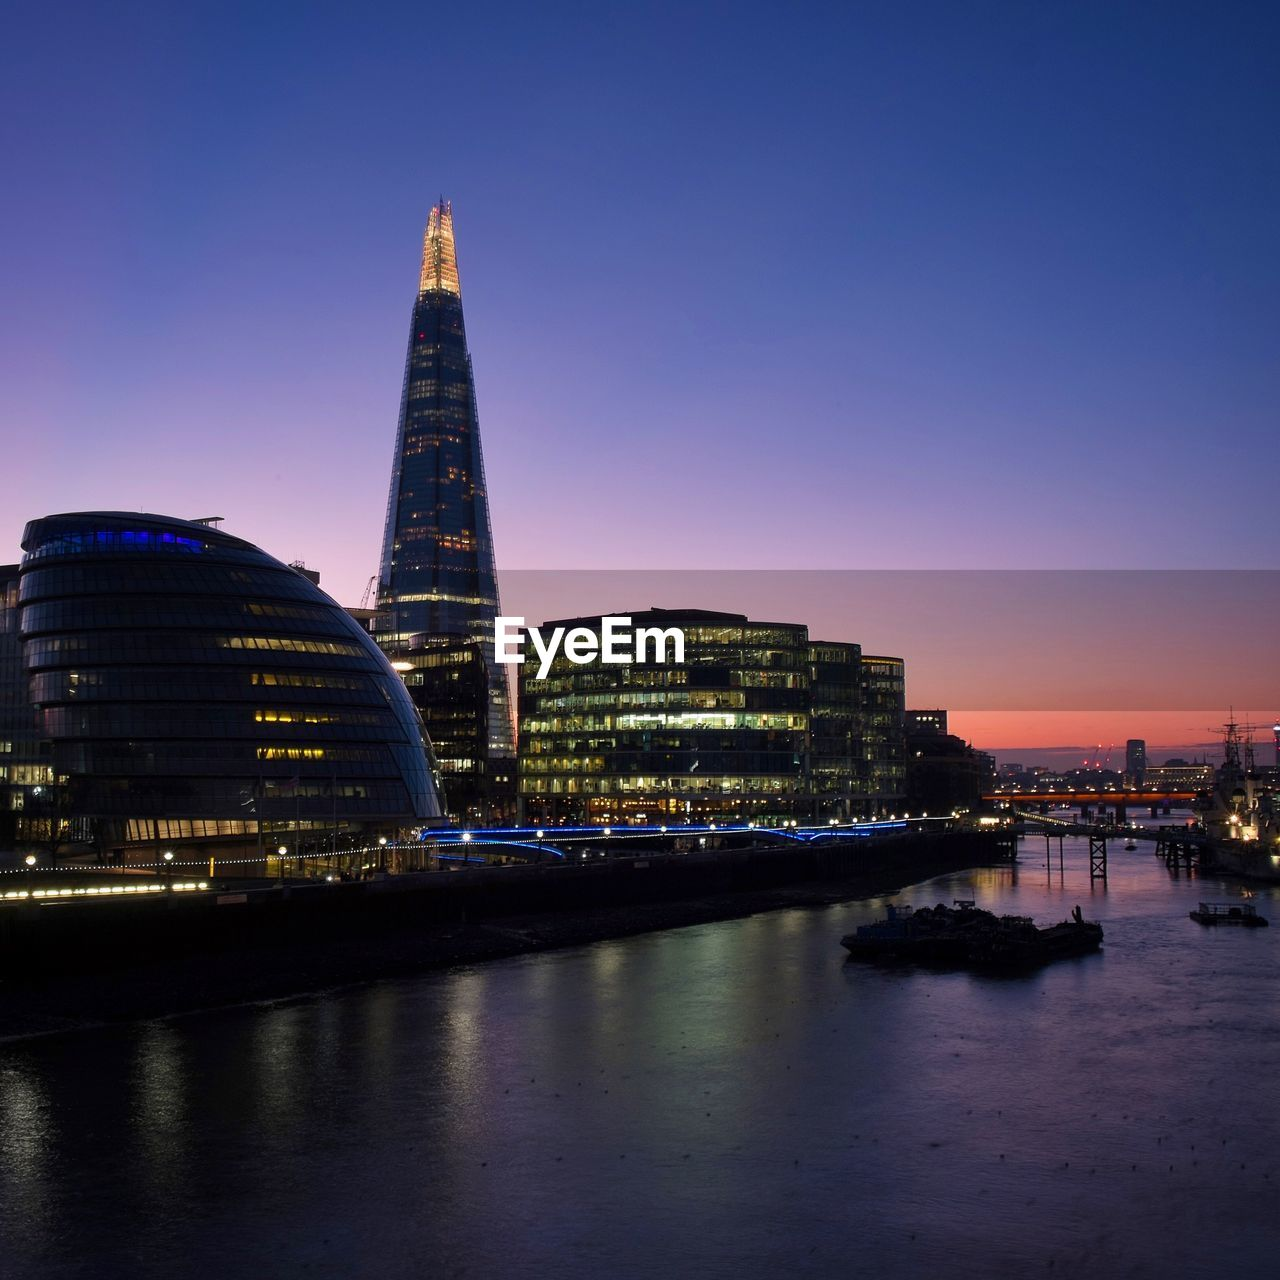 architecture, built structure, building exterior, illuminated, tower, travel destinations, skyscraper, night, city, cityscape, tourism, sunset, modern, travel, water, sky, river, urban skyline, waterfront, outdoors, no people, clear sky, nature